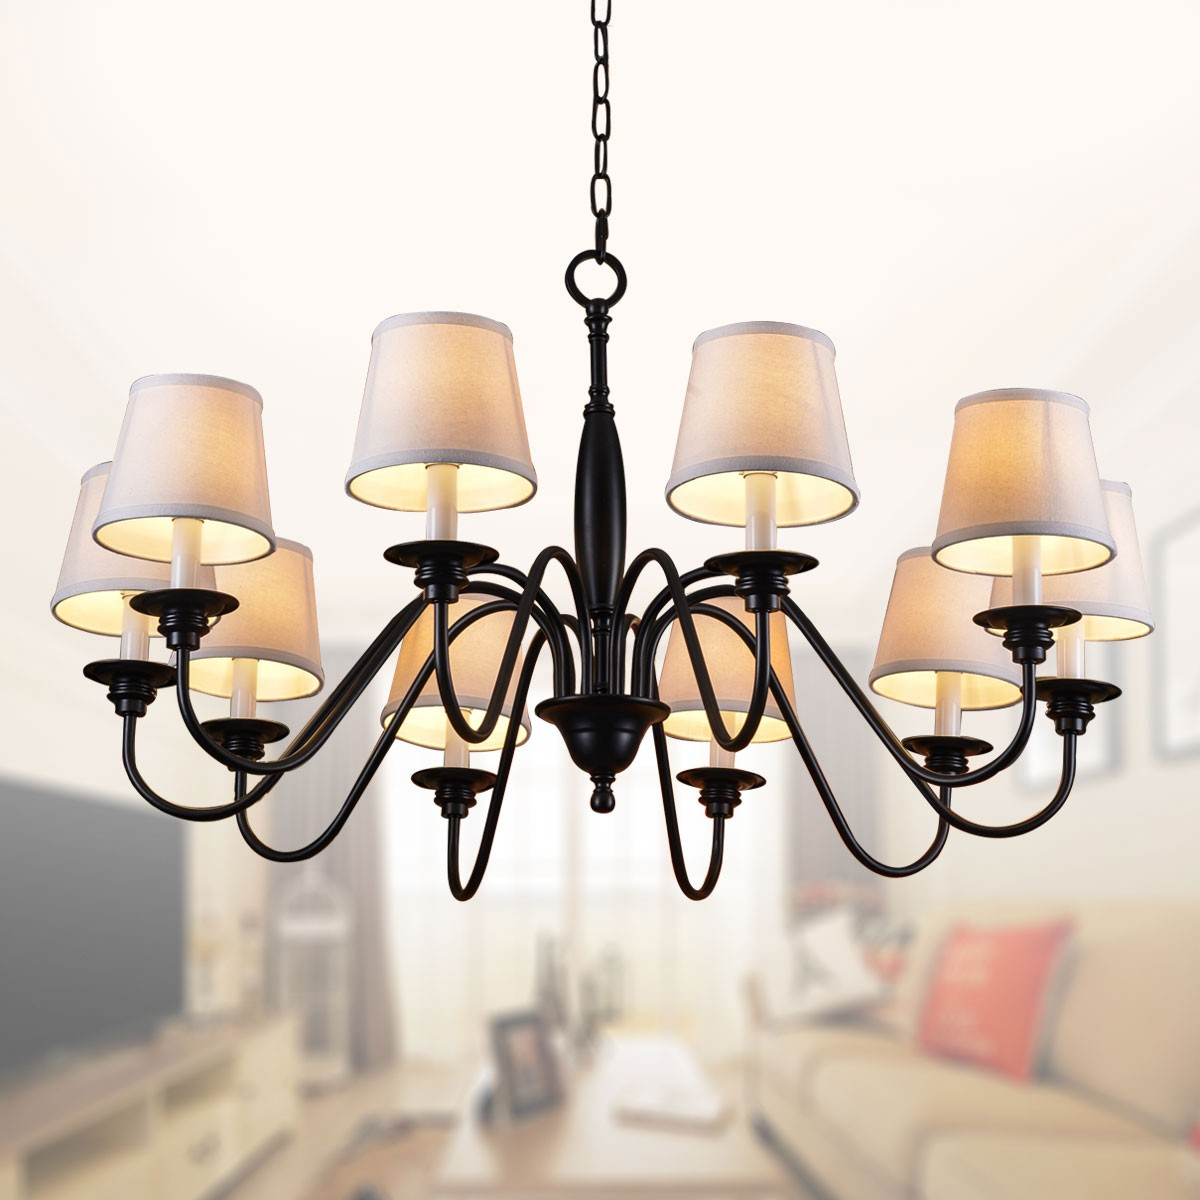 10-Light Black Wrought Iron Chandelier with Cloth Shades (DK-7057-10)